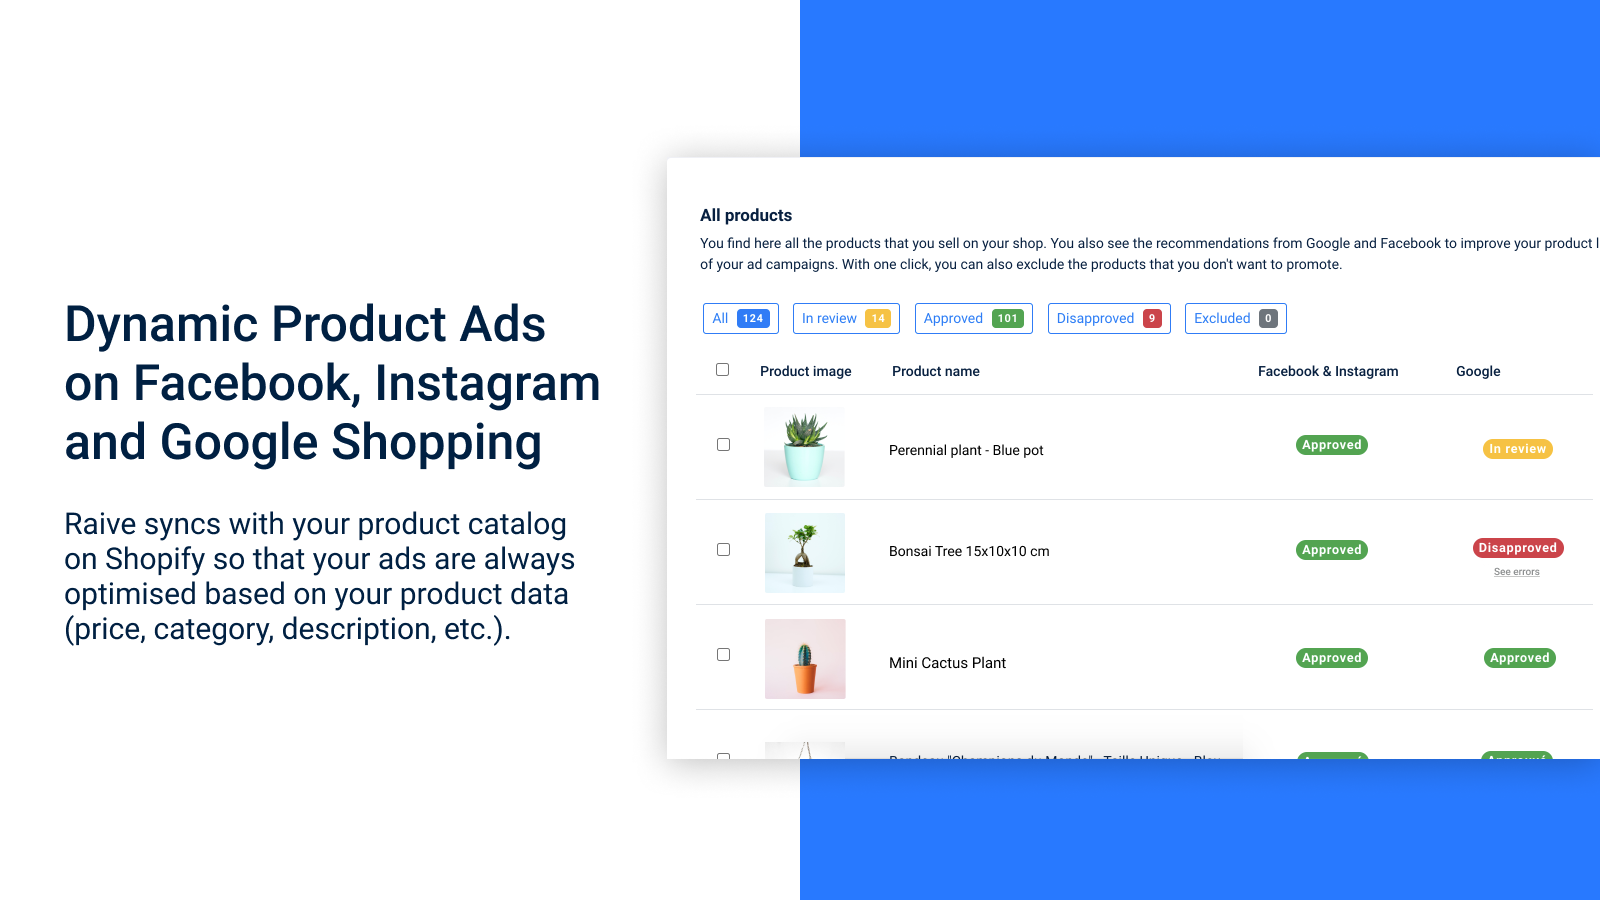 Dynamic Product Ads on Facebook, Instagram and Google Shopping